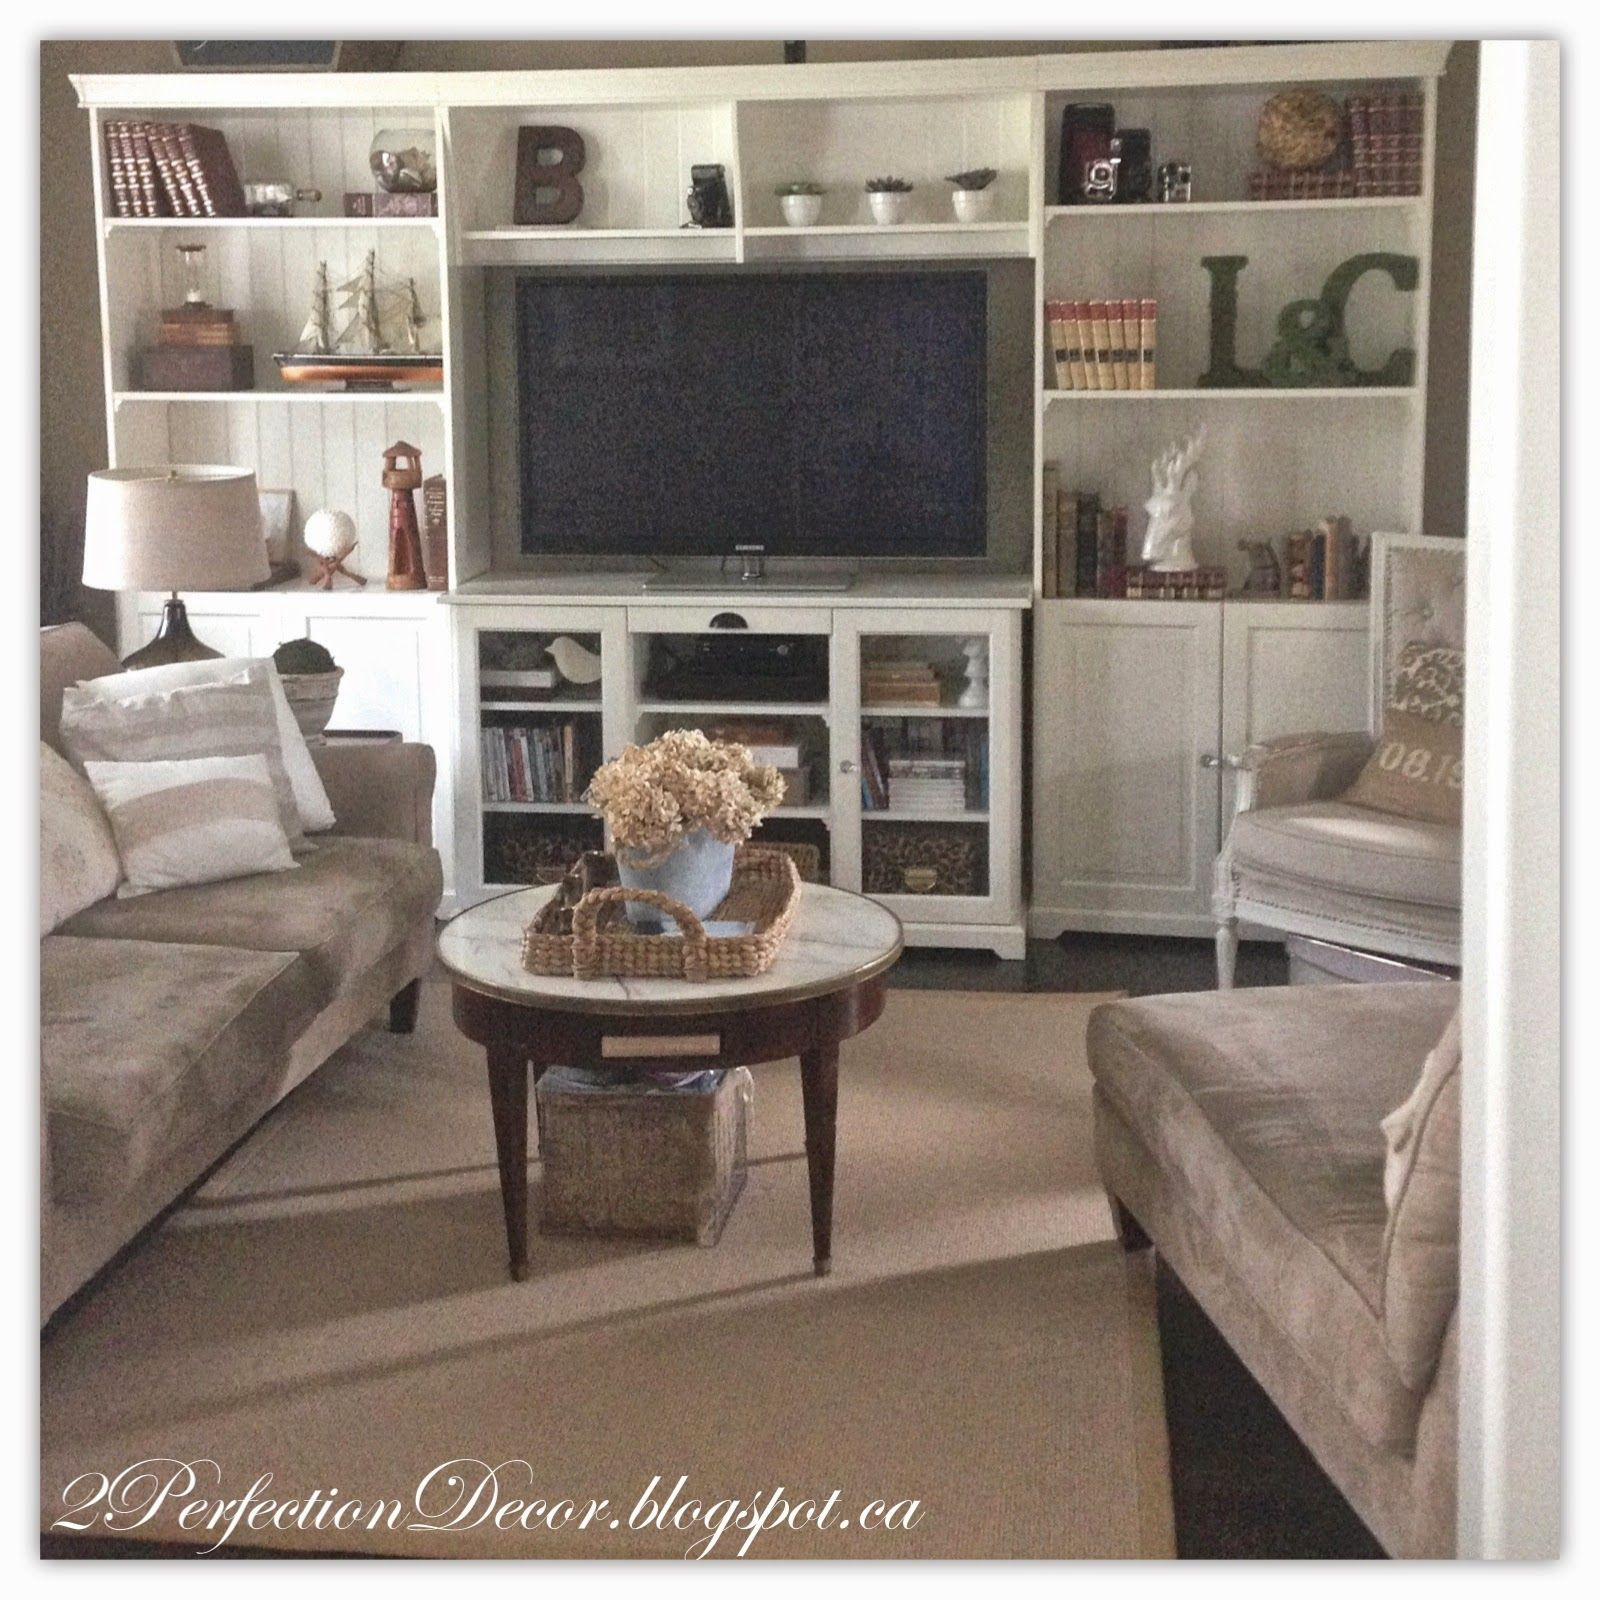 A home decor blog following our journey on creating the perfect home